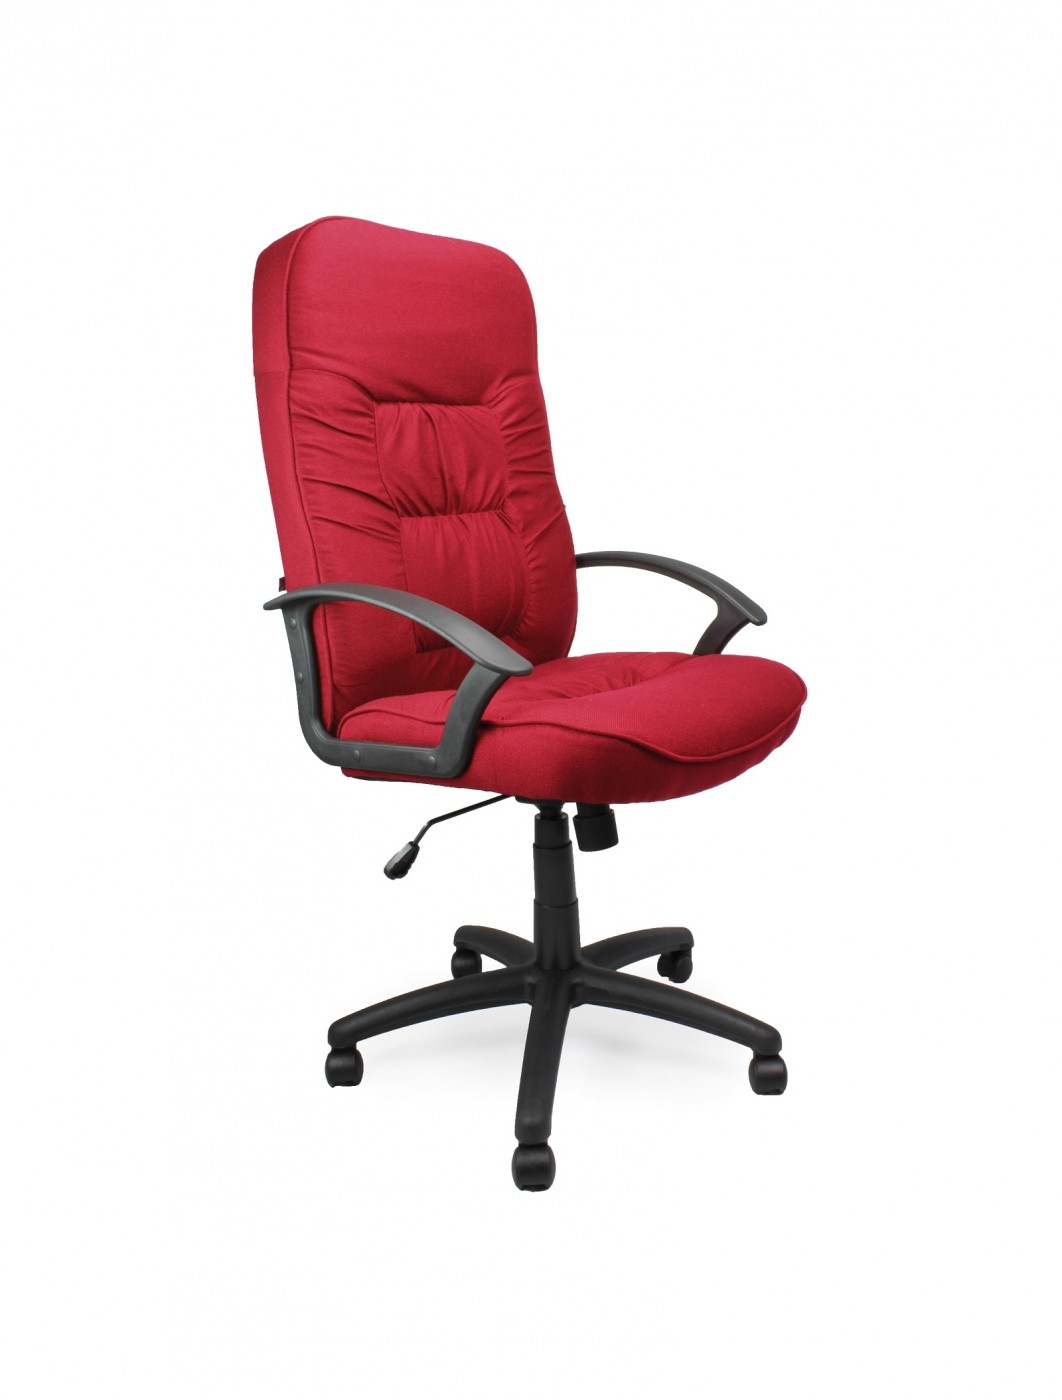 High back fabric office chair - Coniston Fabric High Back Executive Office Chair 6062atgf Enlarged View